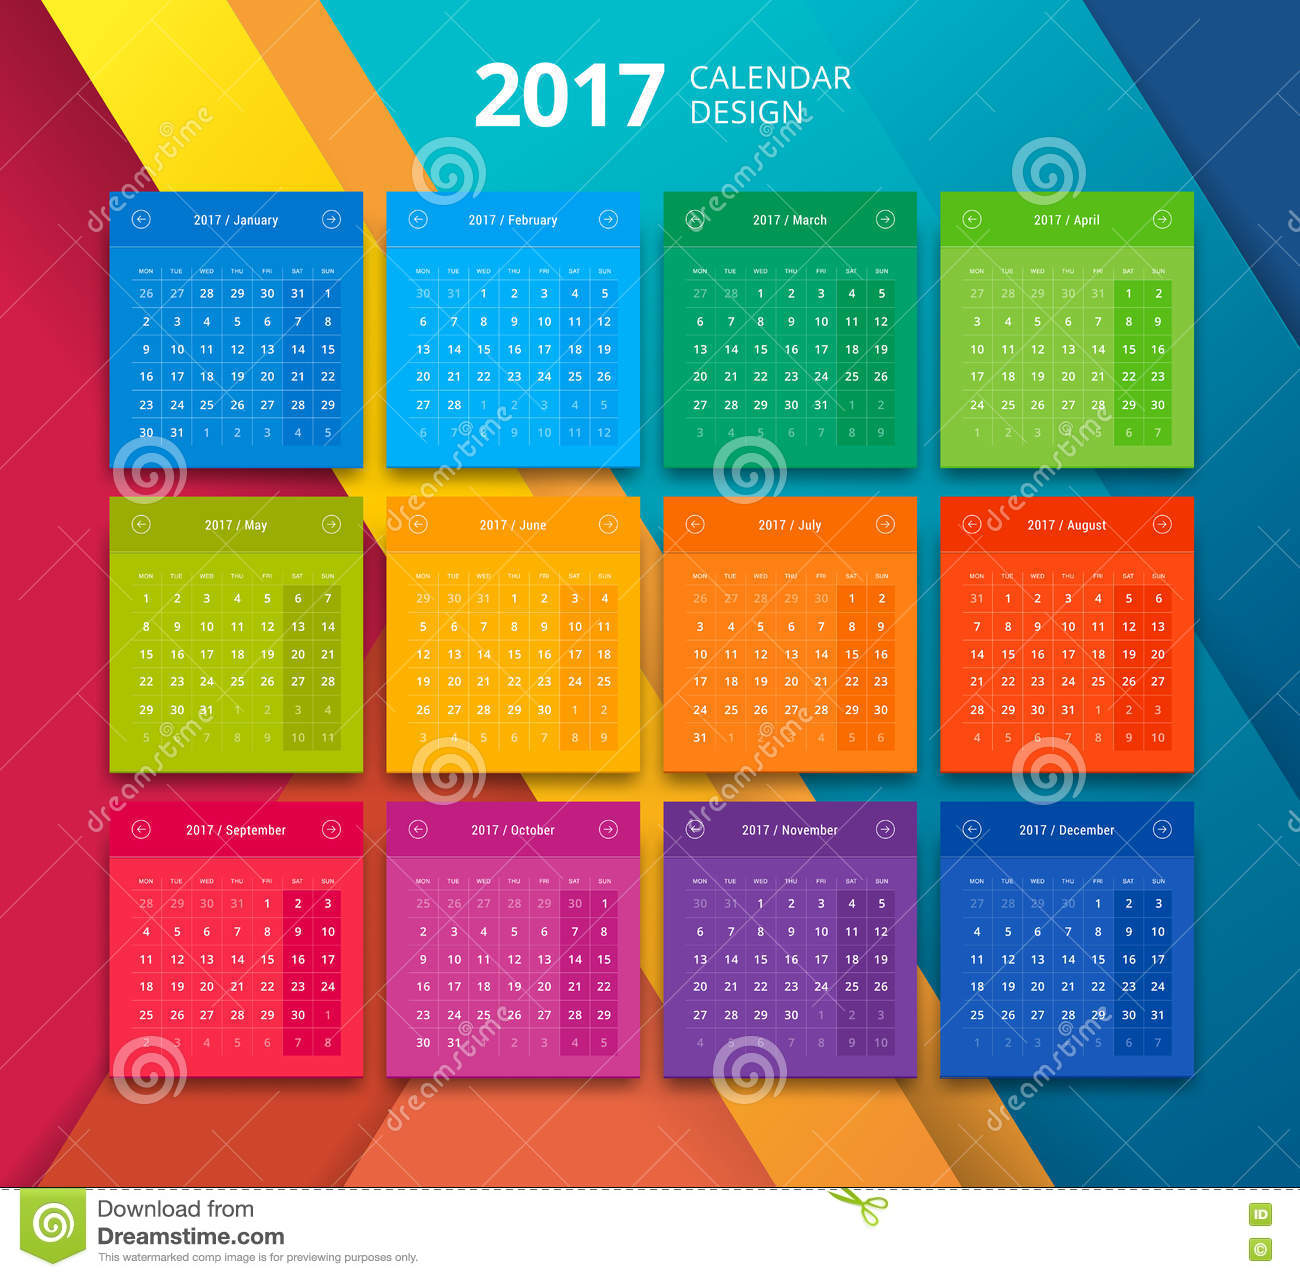 Calendar Design Material : Vector year calendar design template stock